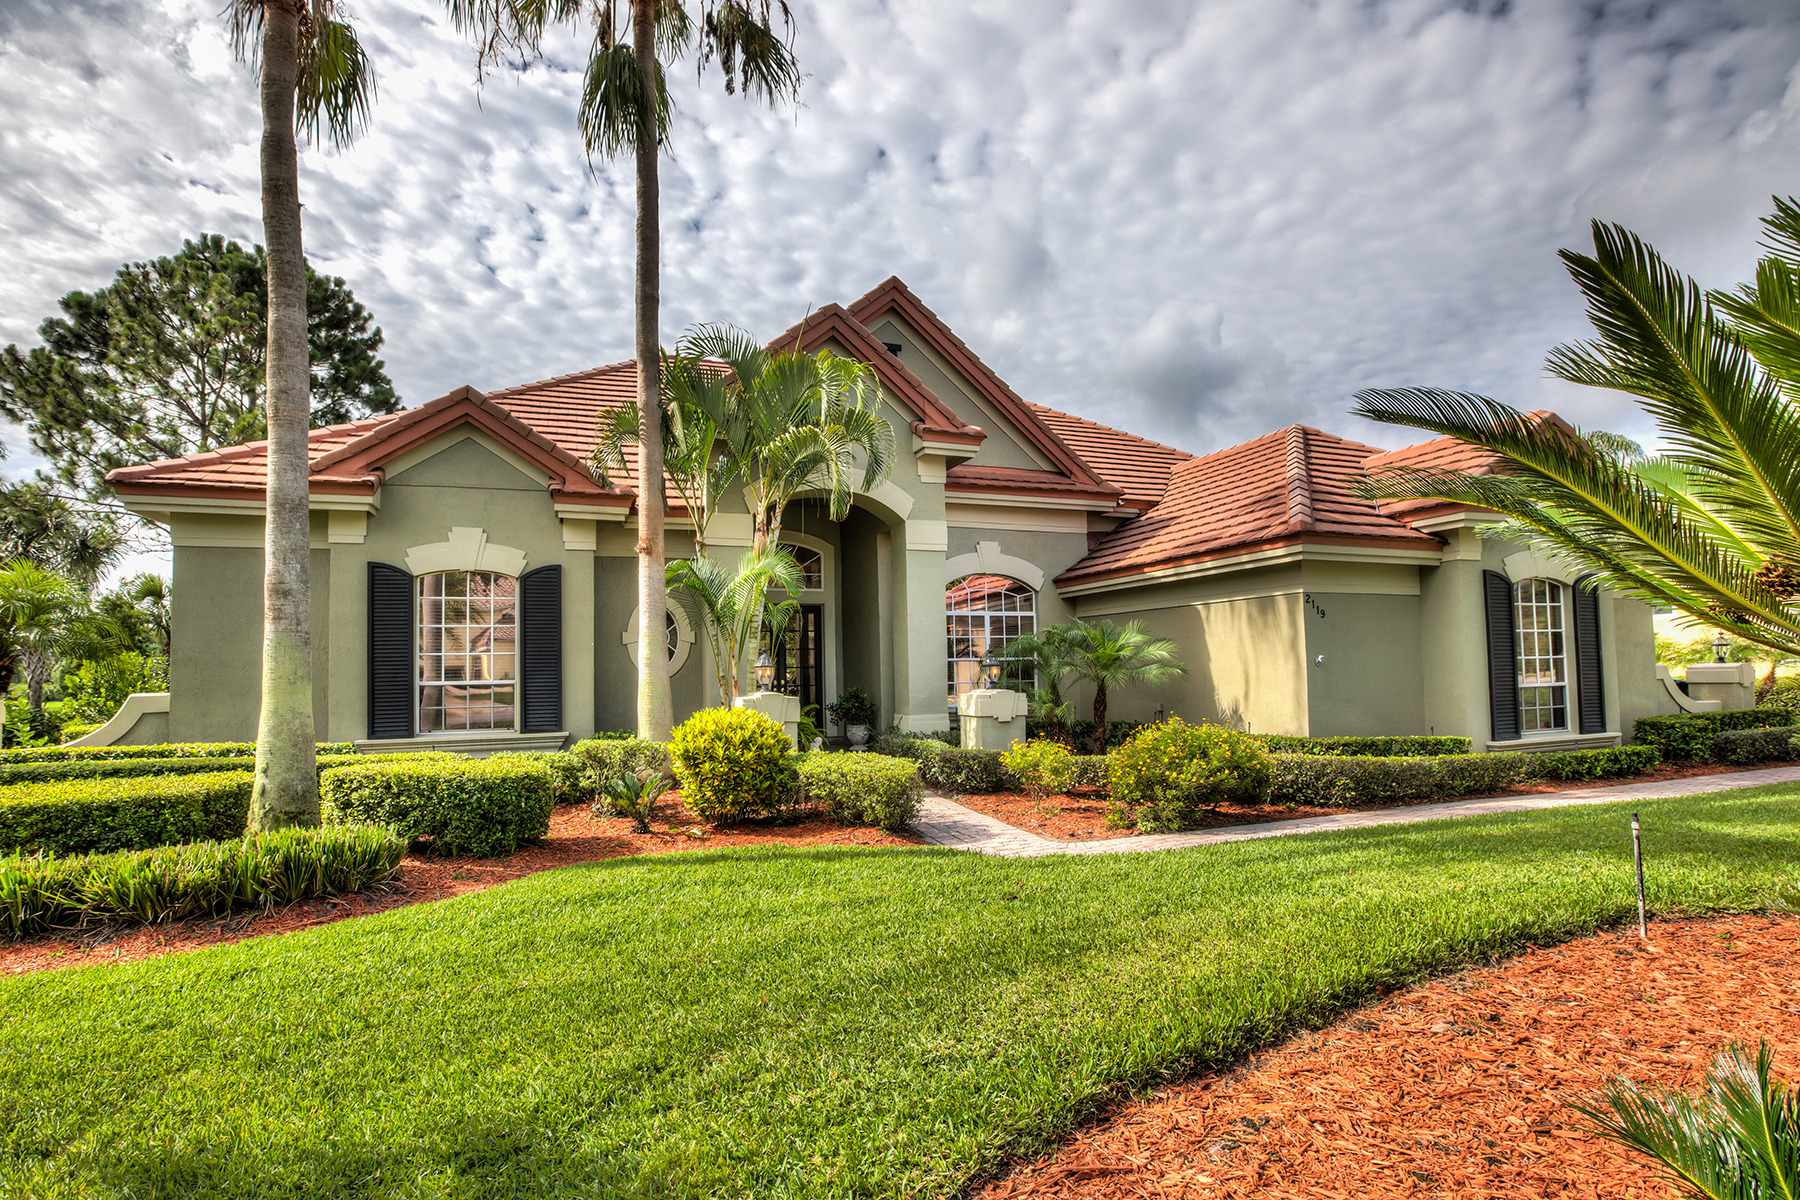 Single Family Homes for Sale at WINDERMERE-ORLANDO 2119 Water Key Dr Windermere, Florida 34786 United States